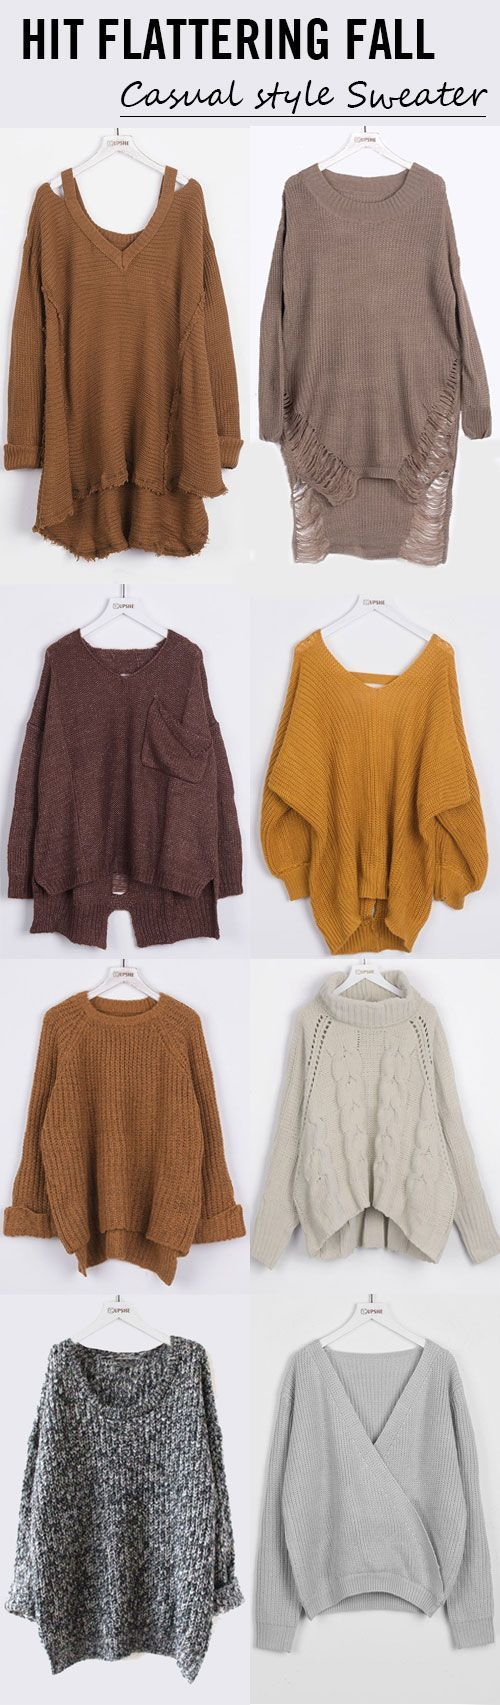 Start from $16.99! Faster shipping! High-quality with low price. This casual, comfy sweater is a total must-have this fall for any fashionista! That style is so in and the color too! Collect more now at Cupshe.com